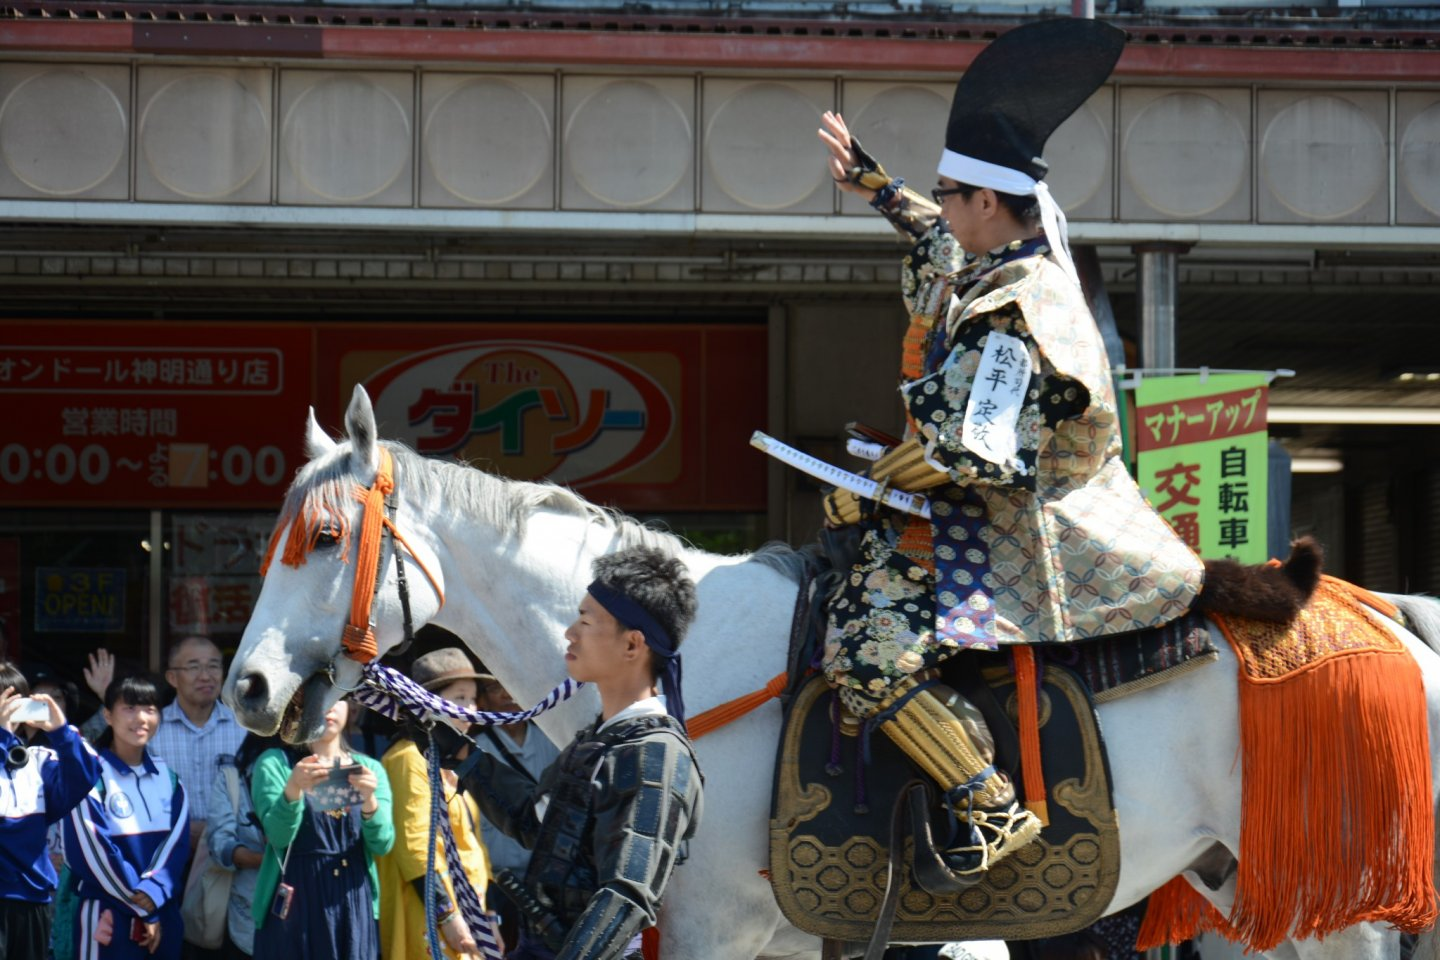 A Samurai being led on horseback.